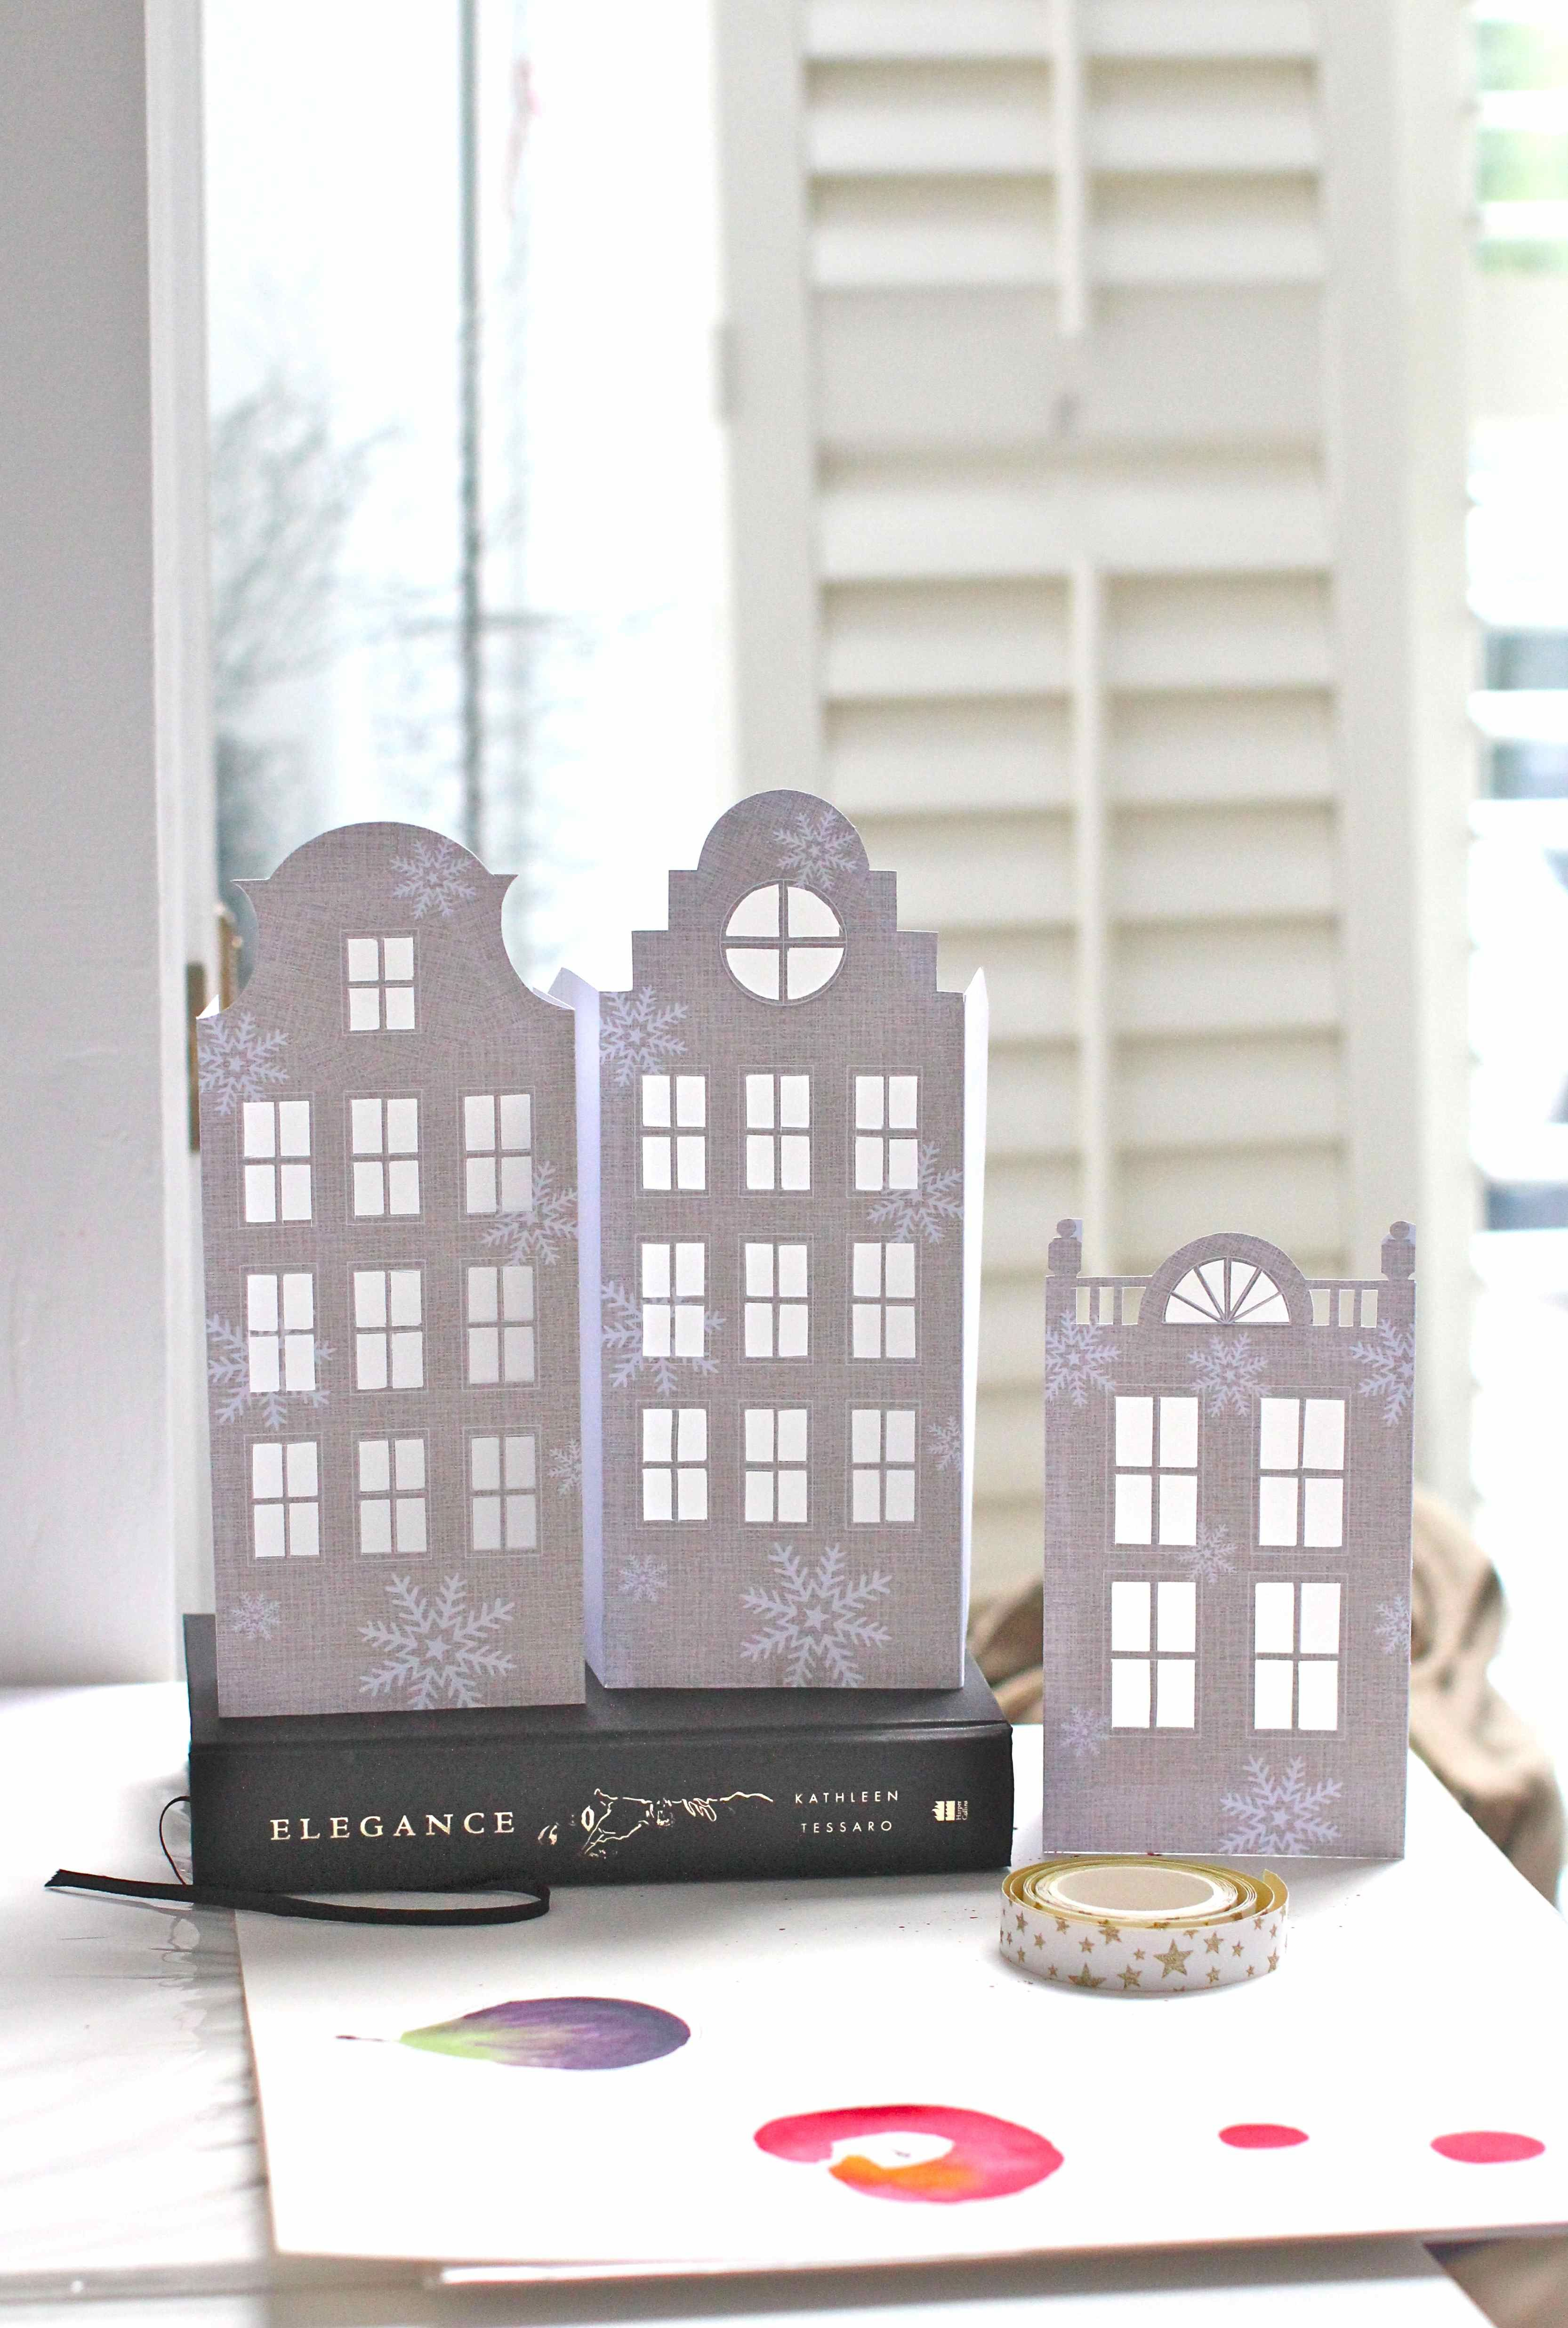 DIY Dutch house luminaries - instructions here. (Templates in their ...